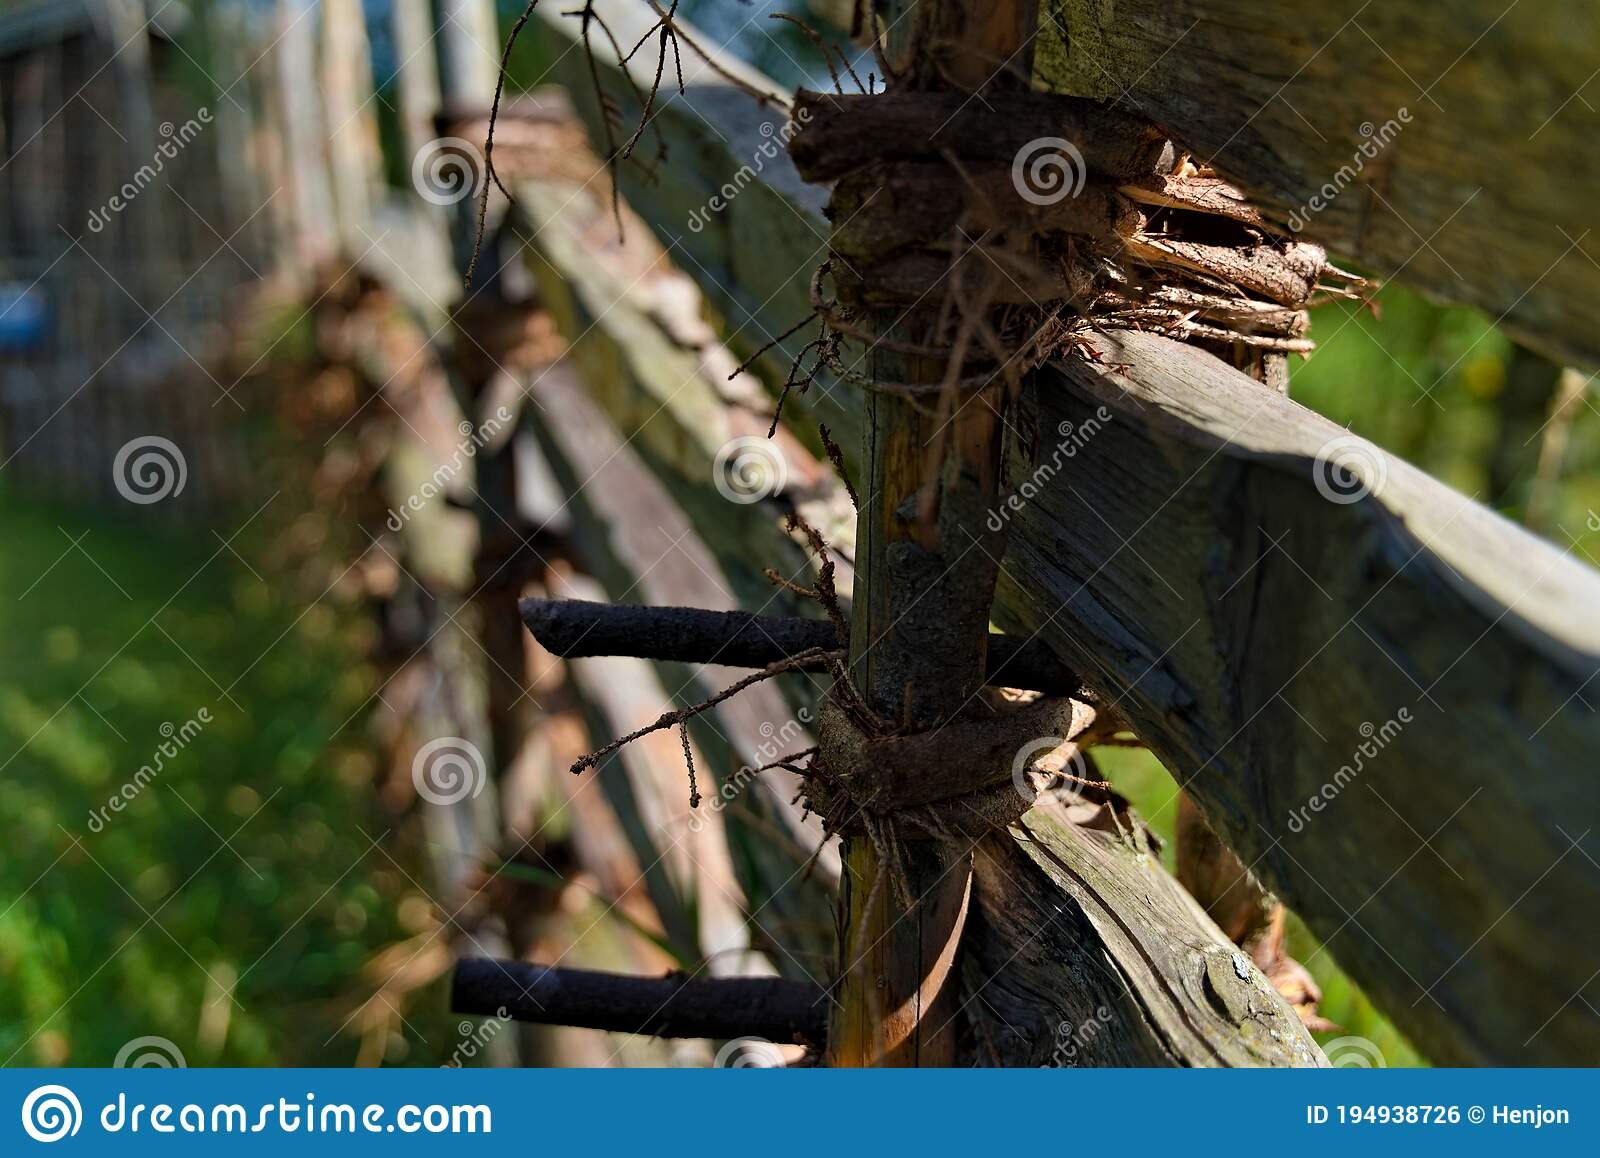 Willow Branch Fence With Wooden Poles Stock Photo Image Of Branch Area 194938726